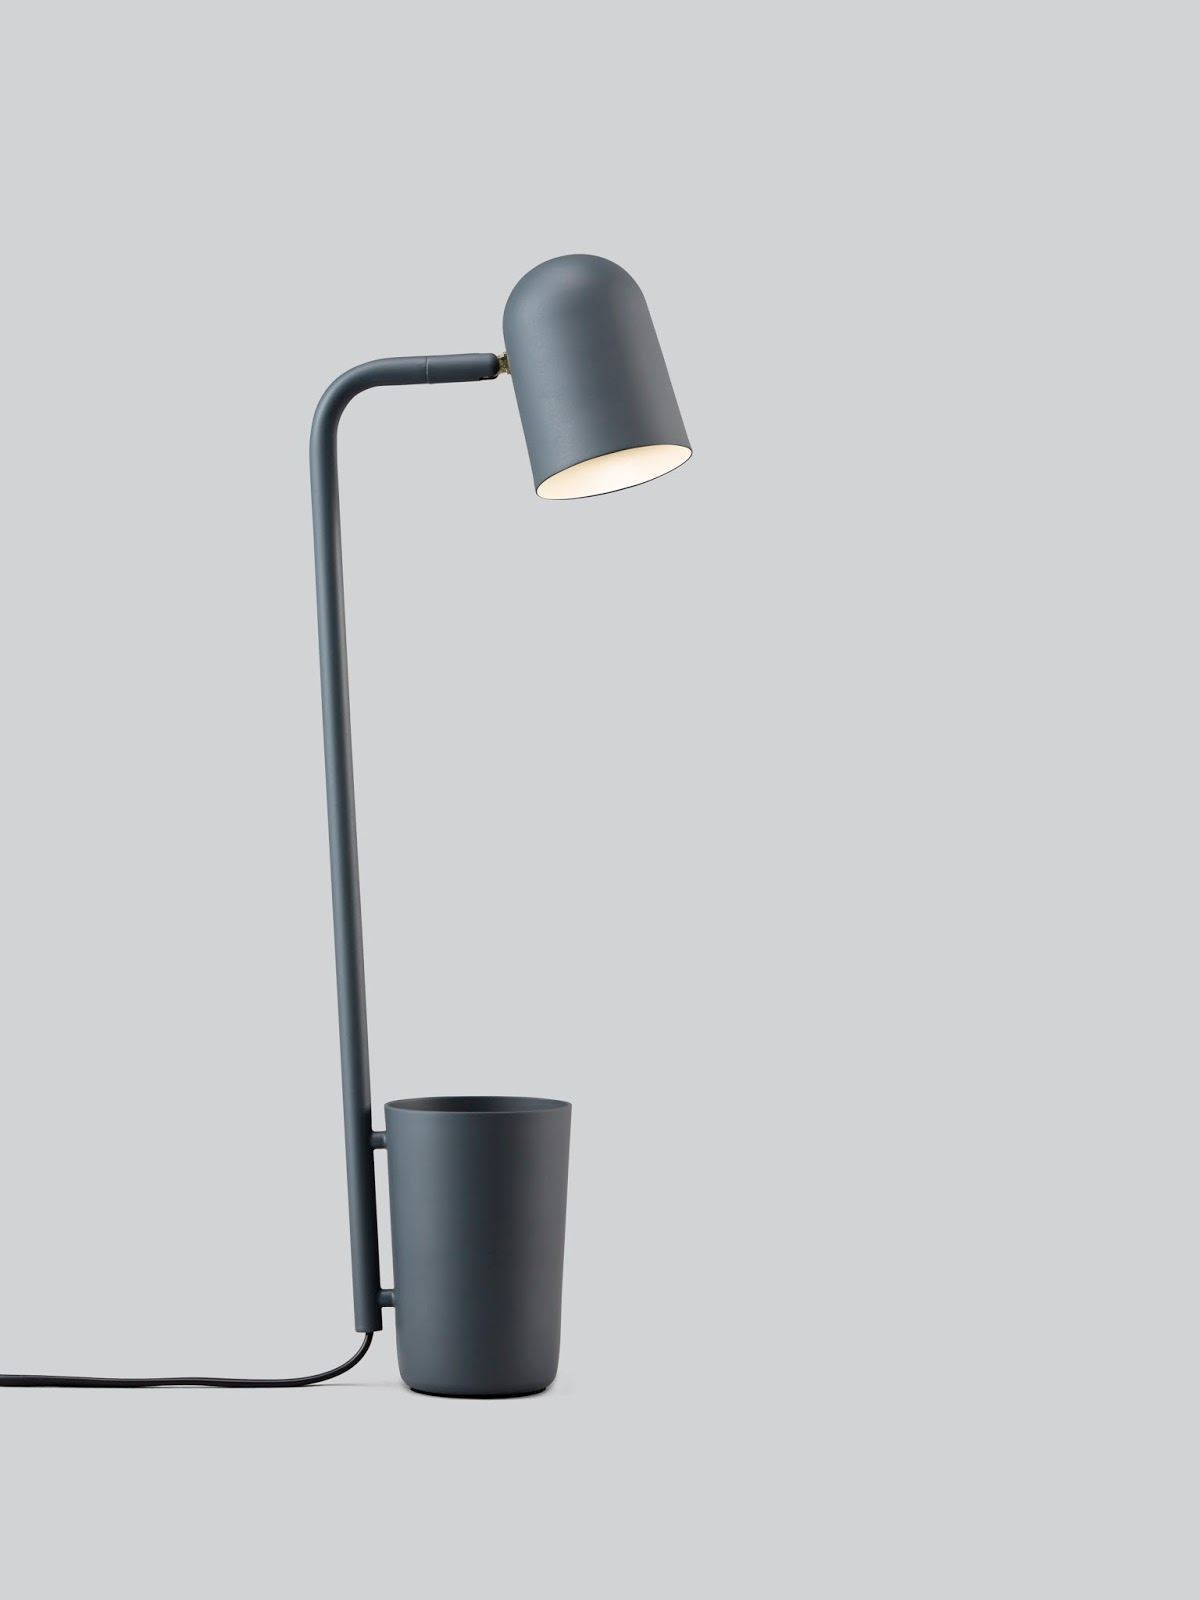 Desk lamp with an organizer - Northen Lighting